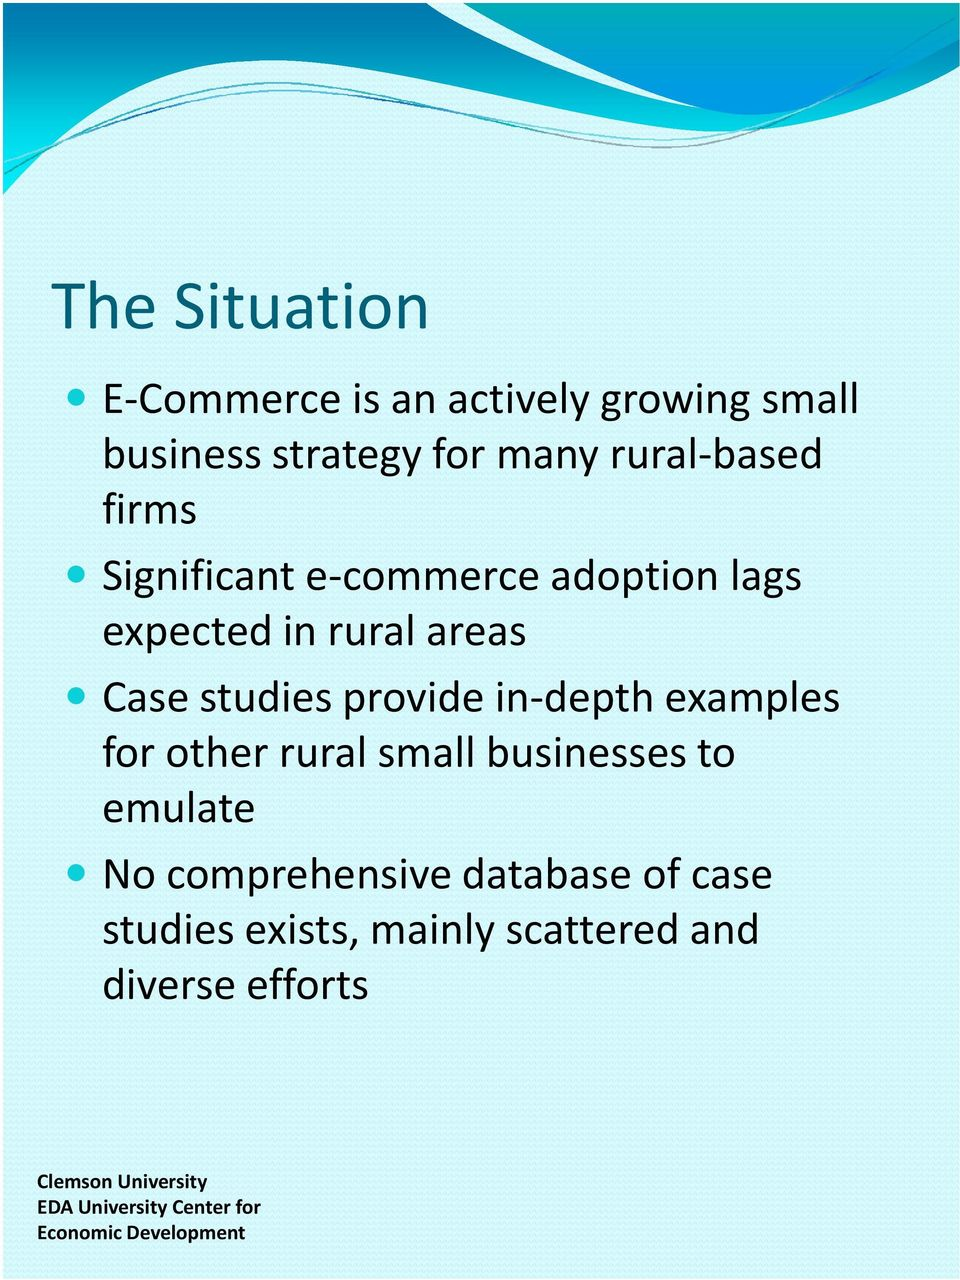 Case studies provide in-depth examples for other rural small businesses to emulate